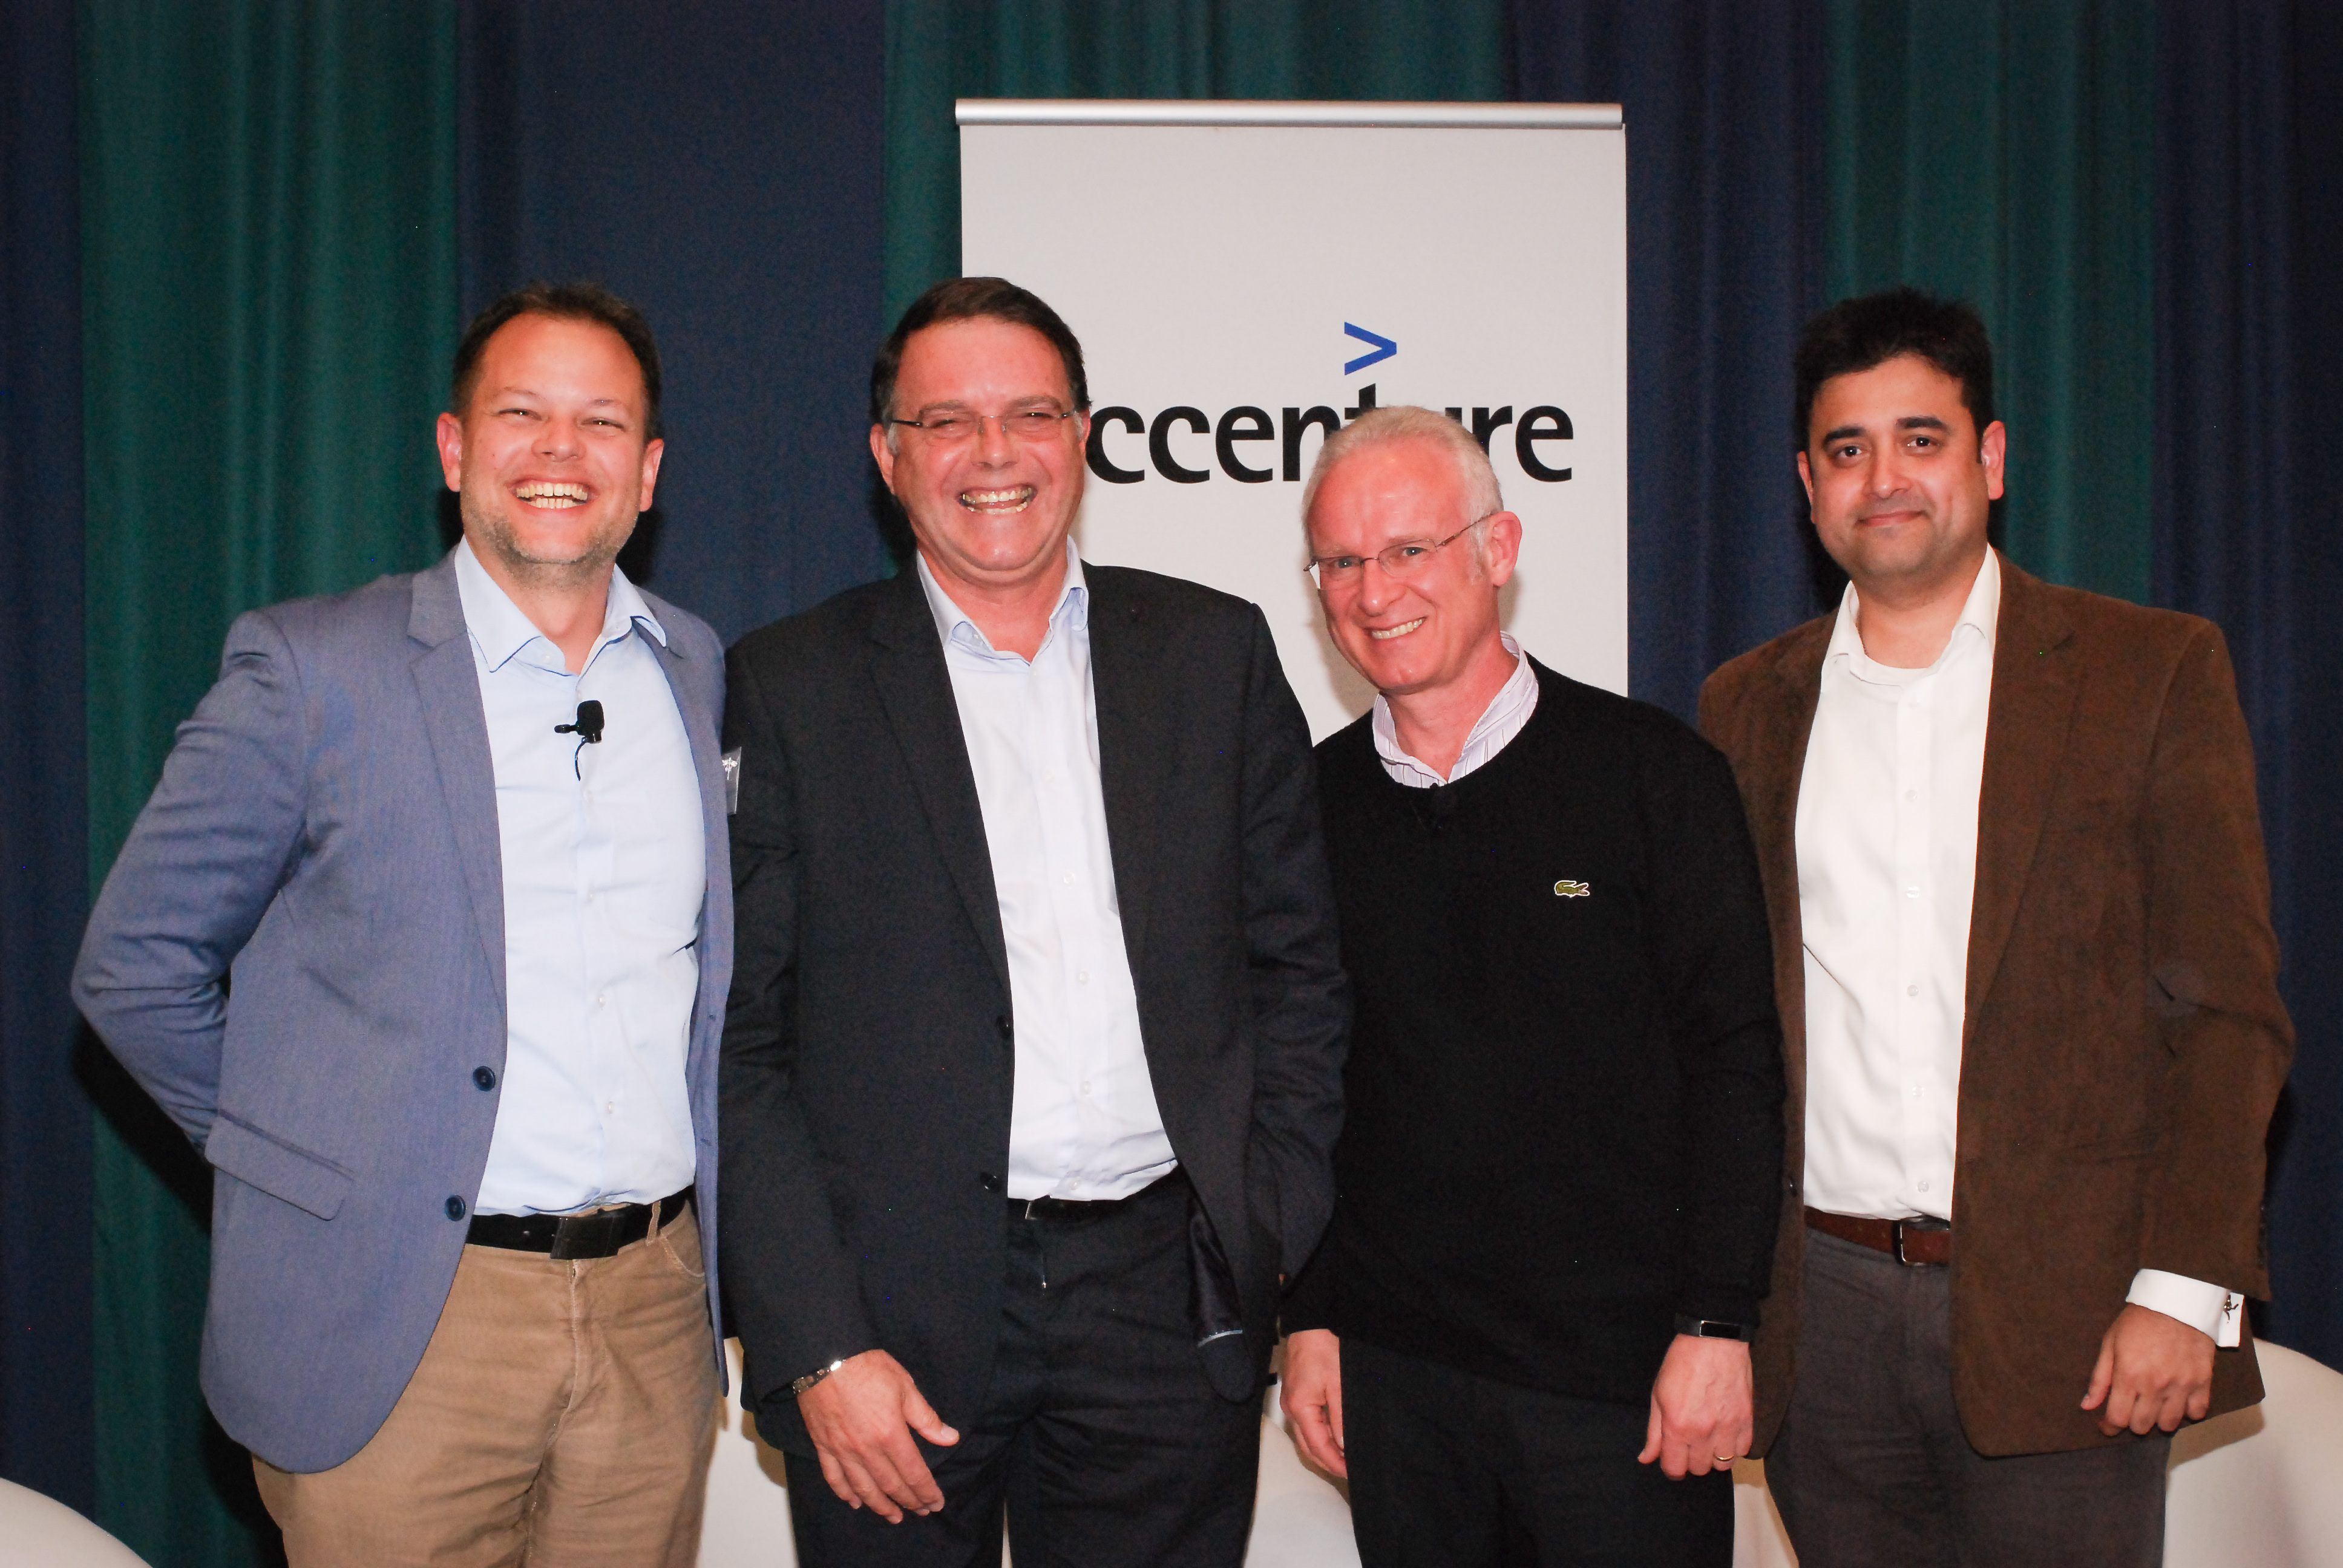 Panellists Rory Moore, Bradley Coward, Arthur Goldstuck and Pushkar Gokhale.